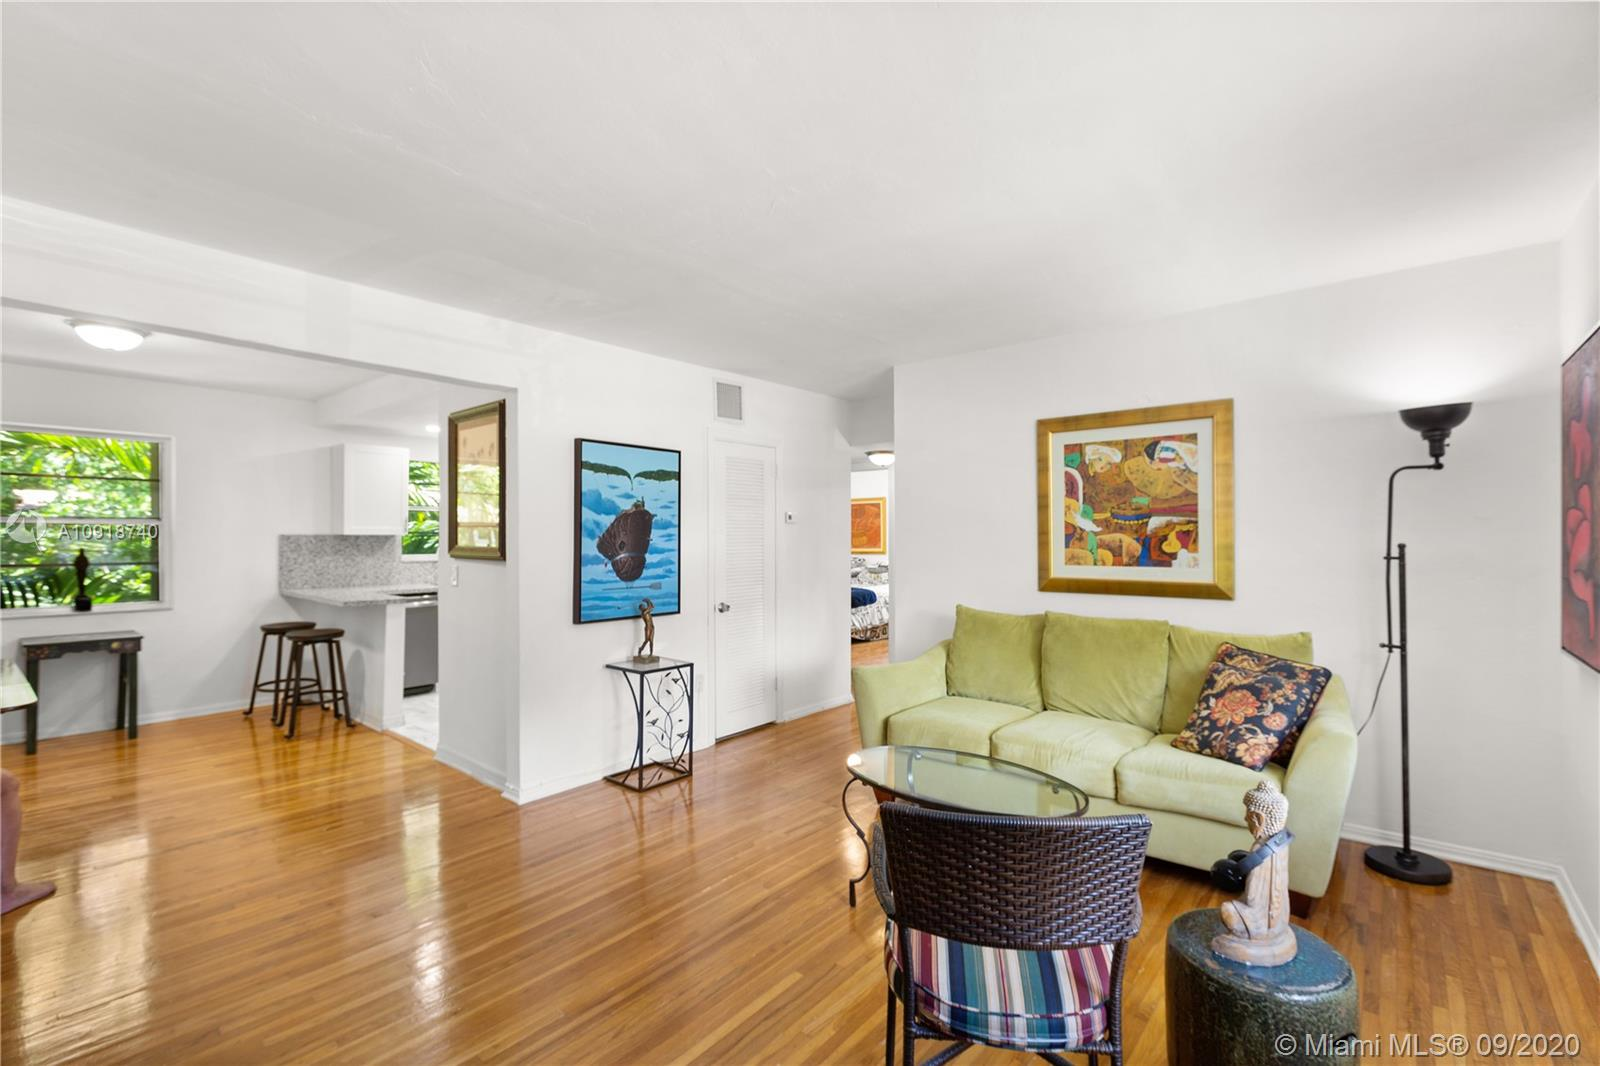 Lush, tropical vibes welcome you as you  meander through the hidden gem that is Pathways Condominiums. With a beautiful pool and picnic area, it's an easy place to unwind. Located on the second floor, this impeccable 2/1 impresses with Dade County Pine hardwood floors, bright light and a recently renovated kitchen. The new AC and updated laundry are sure to please. Moreover, its world class walkability means Sunset Place, the University of Miami and Downtown SoMi are all a short stroll away.